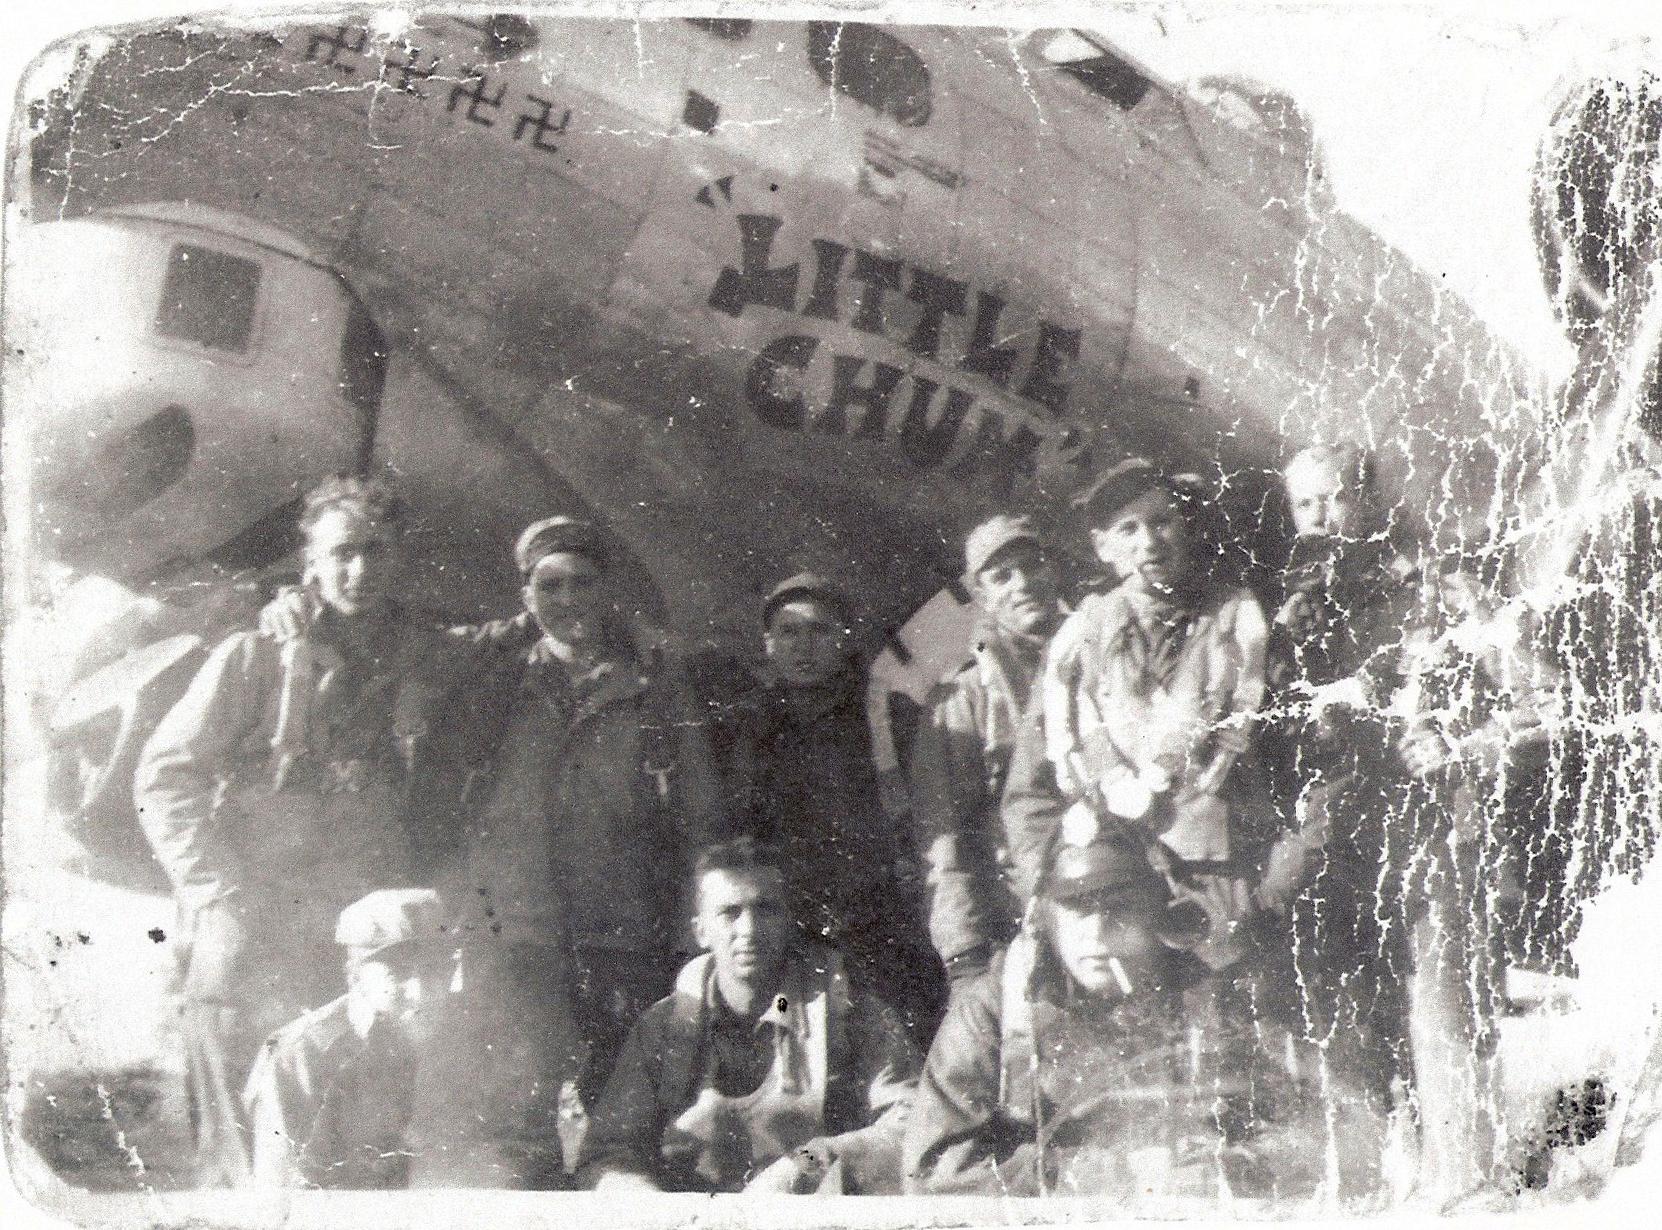 B-17 #42-107025 / Little Chum